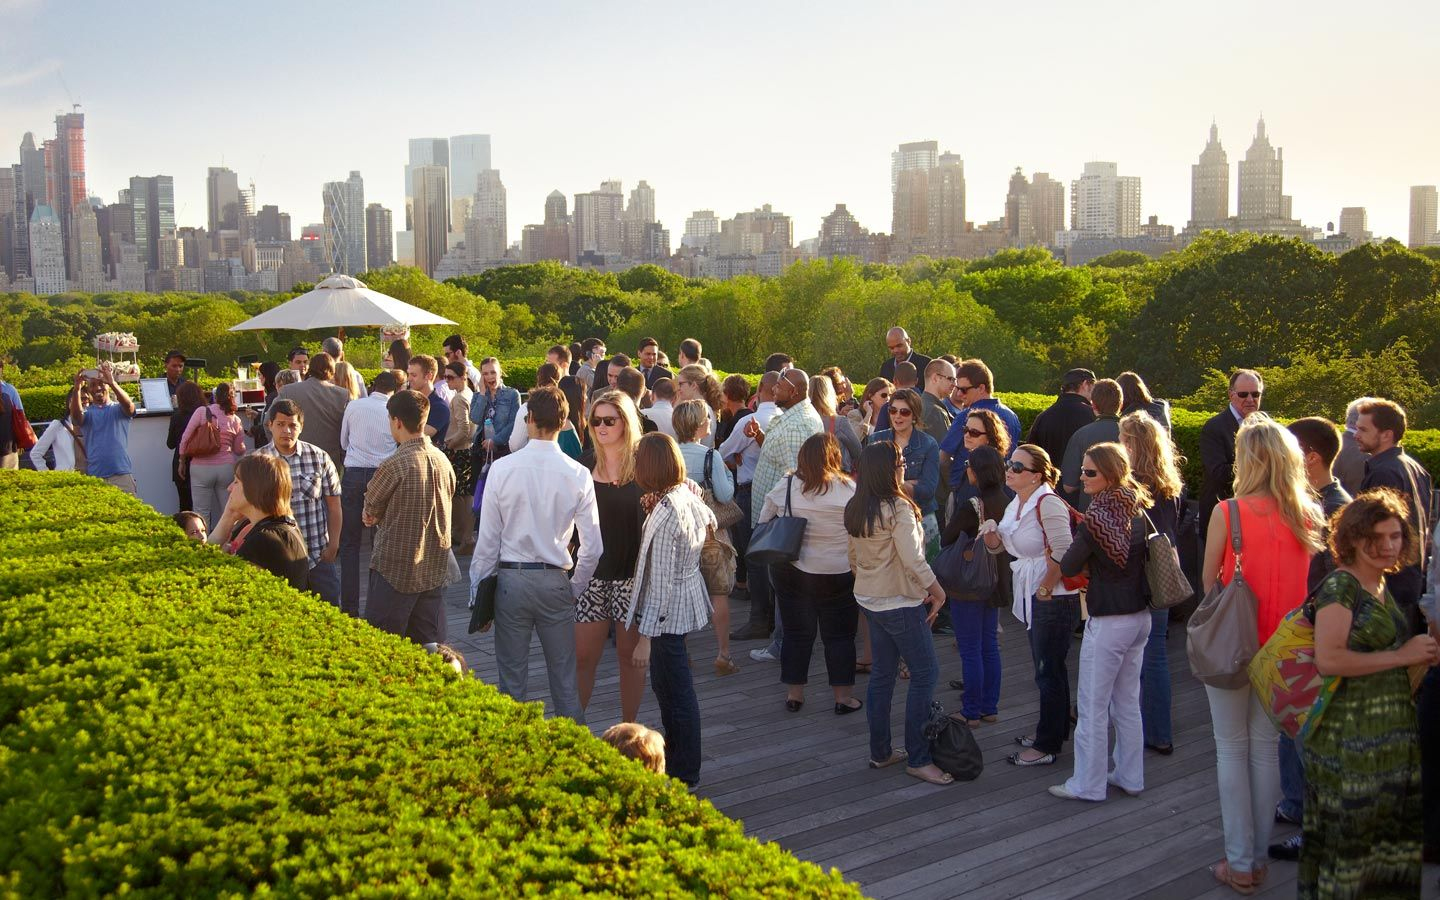 People Enjoying Drinks And Conversation On A Rooftop Bar With Views Of The Manhattan Skyline In The Backgr New York Attractions Rooftop Garden New York Rooftop